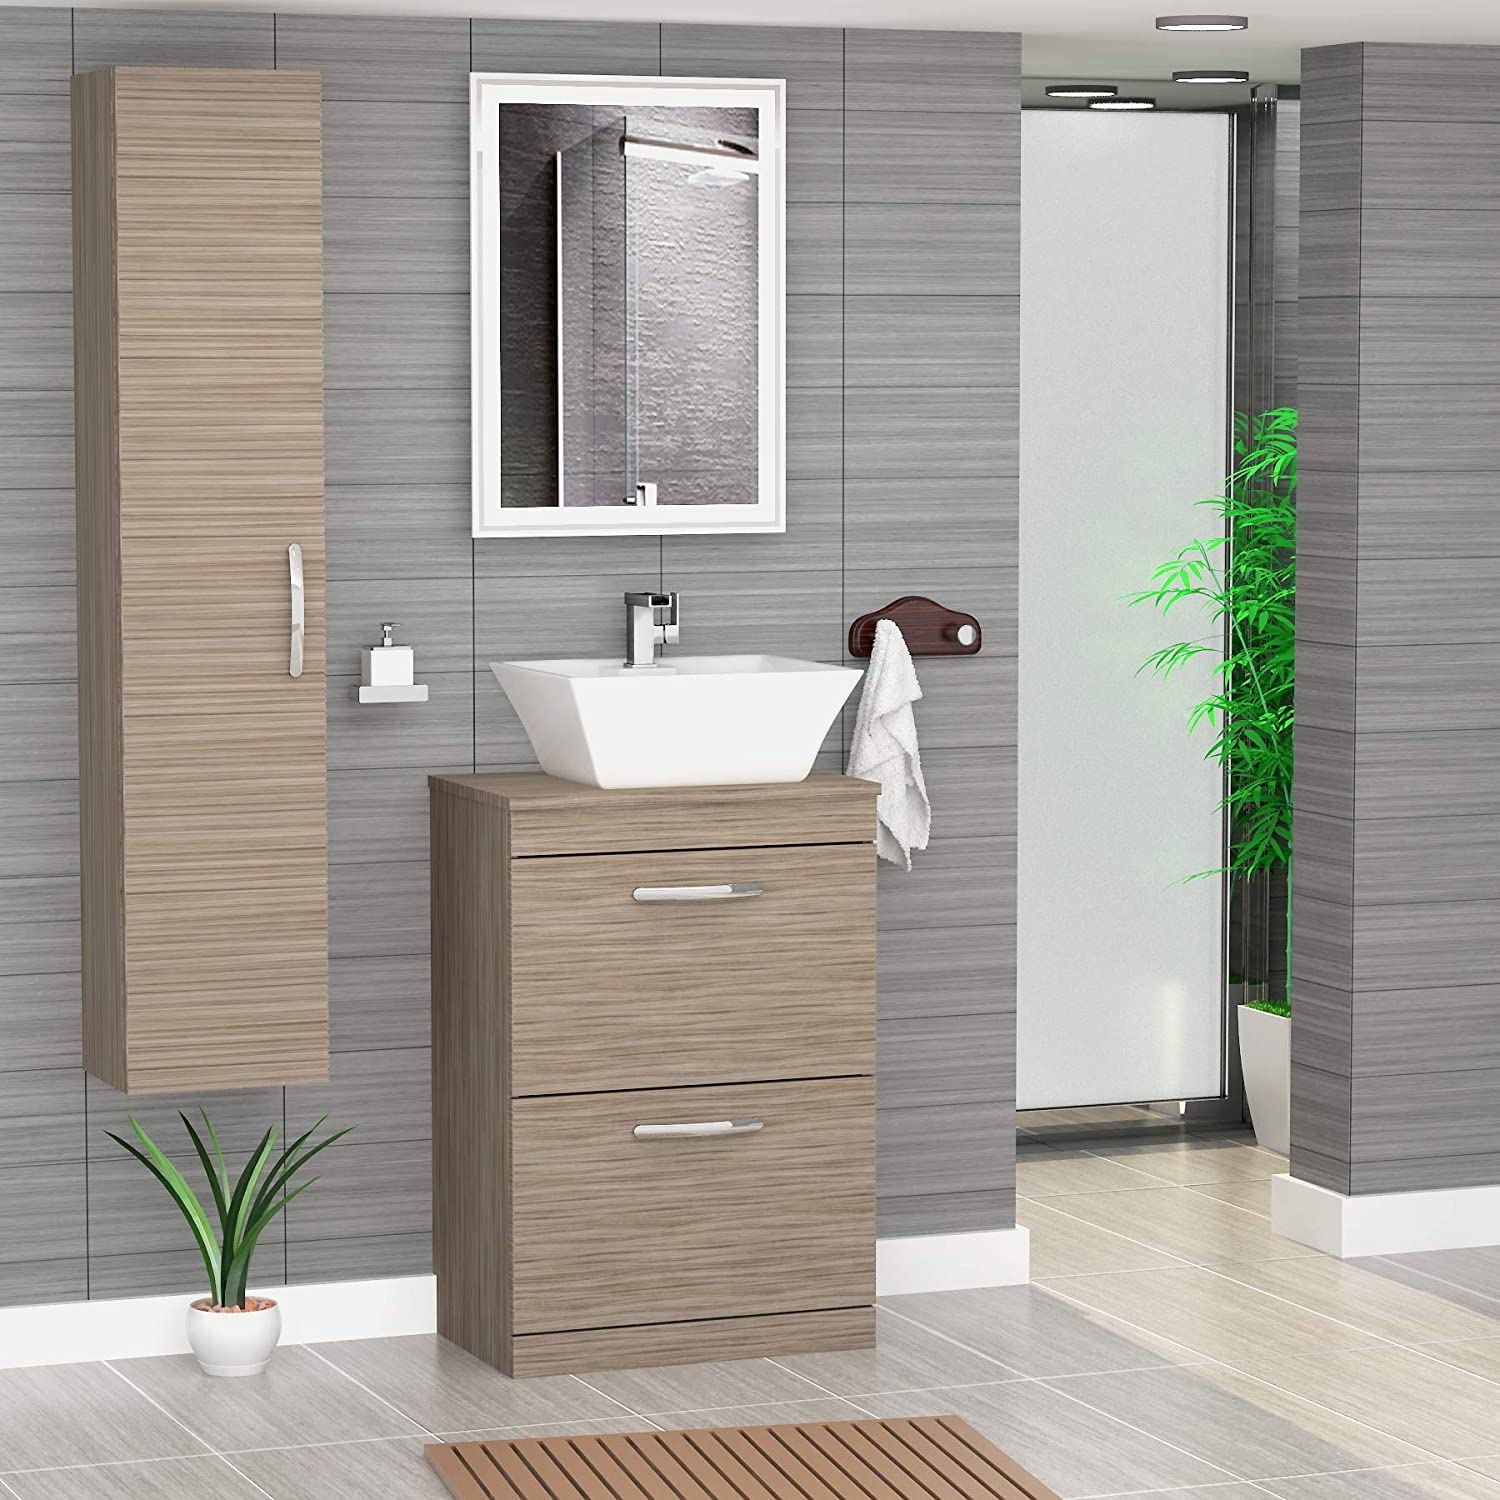 Premier athena 600mm driftwood 2 drawer floor standing worktop vanity unit with 480mm square basin amazon co uk kitchen home